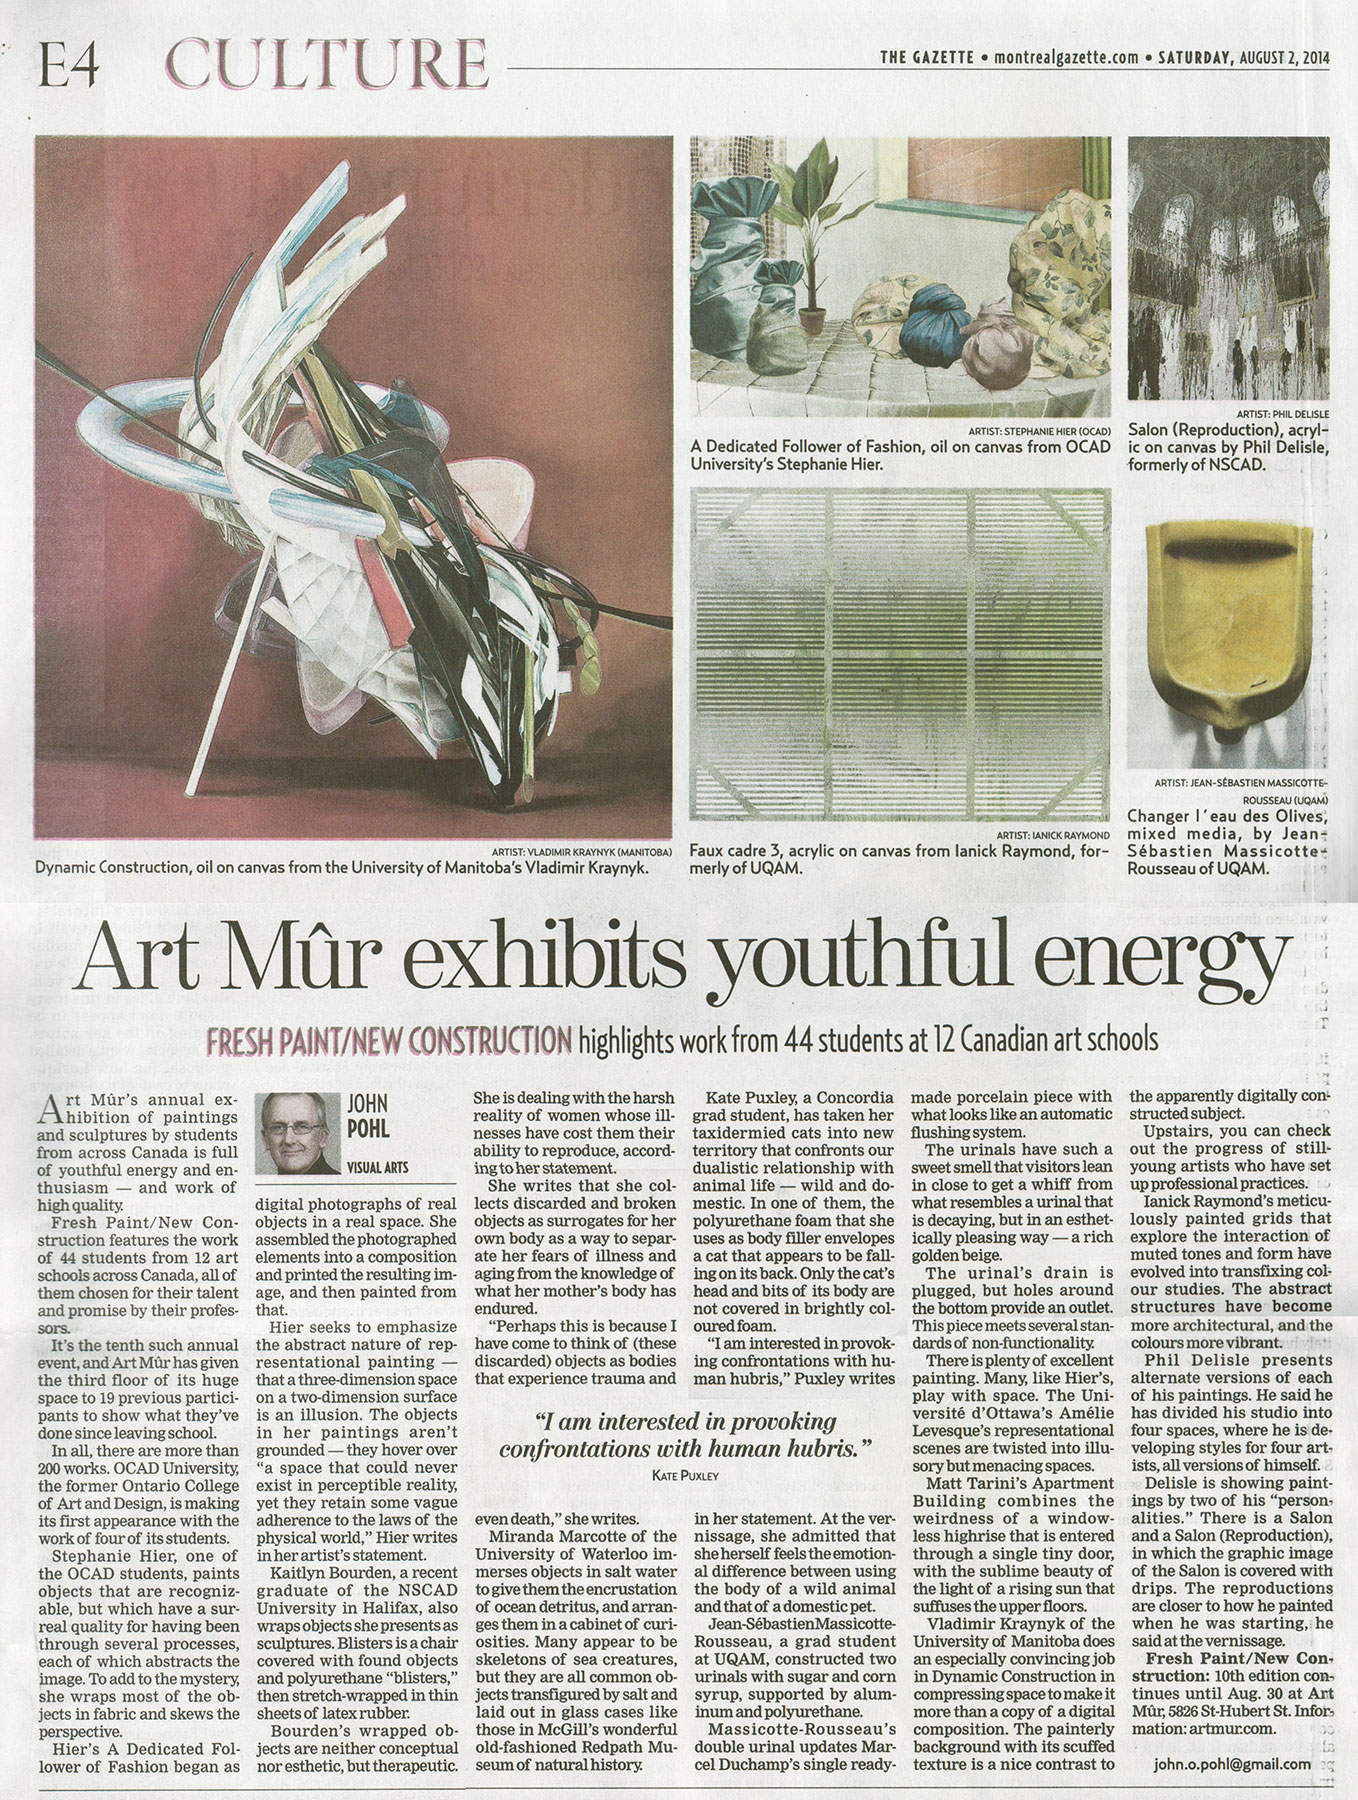 Visual Arts: Art Mûr exhibits youthful energy   Montreal Gazette  Saturday, August 2, 2014.